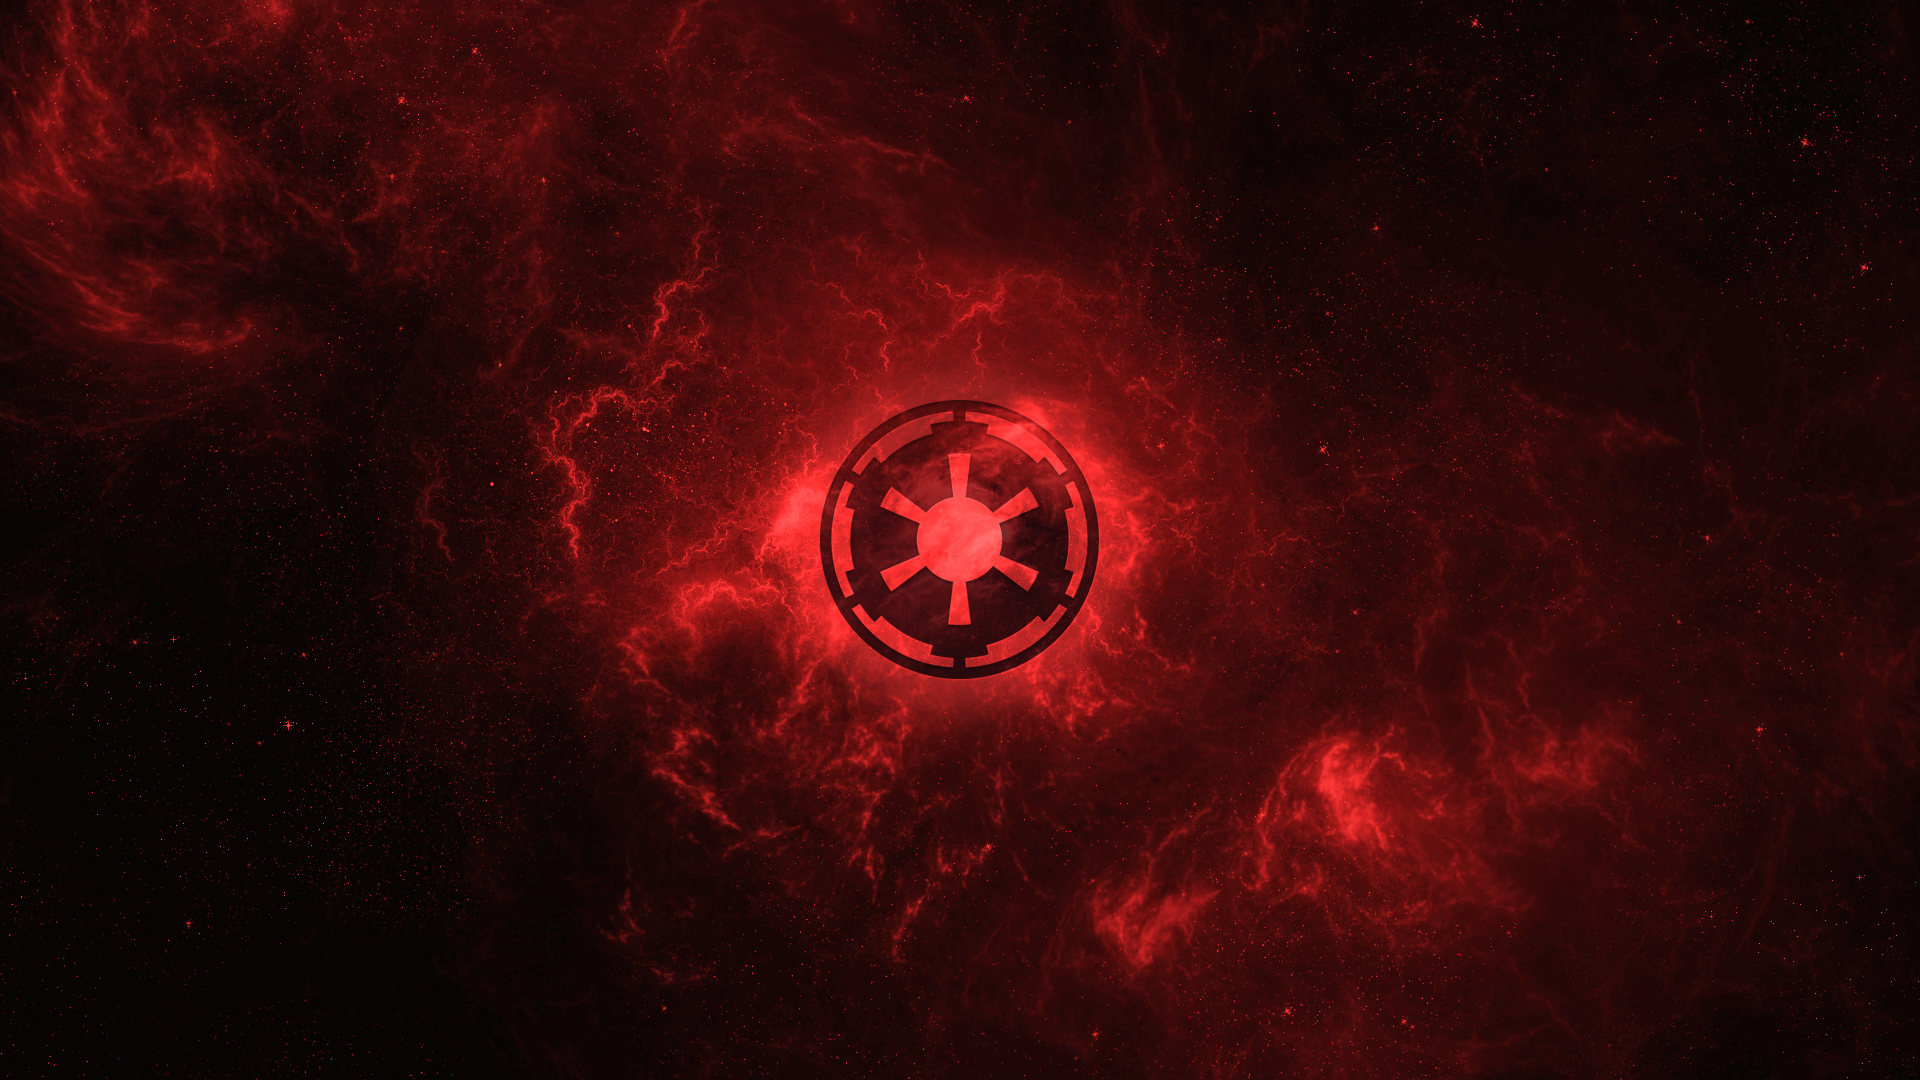 Star Wars Galactic Empire wallpaper 1920 x 1080 px by TaNa